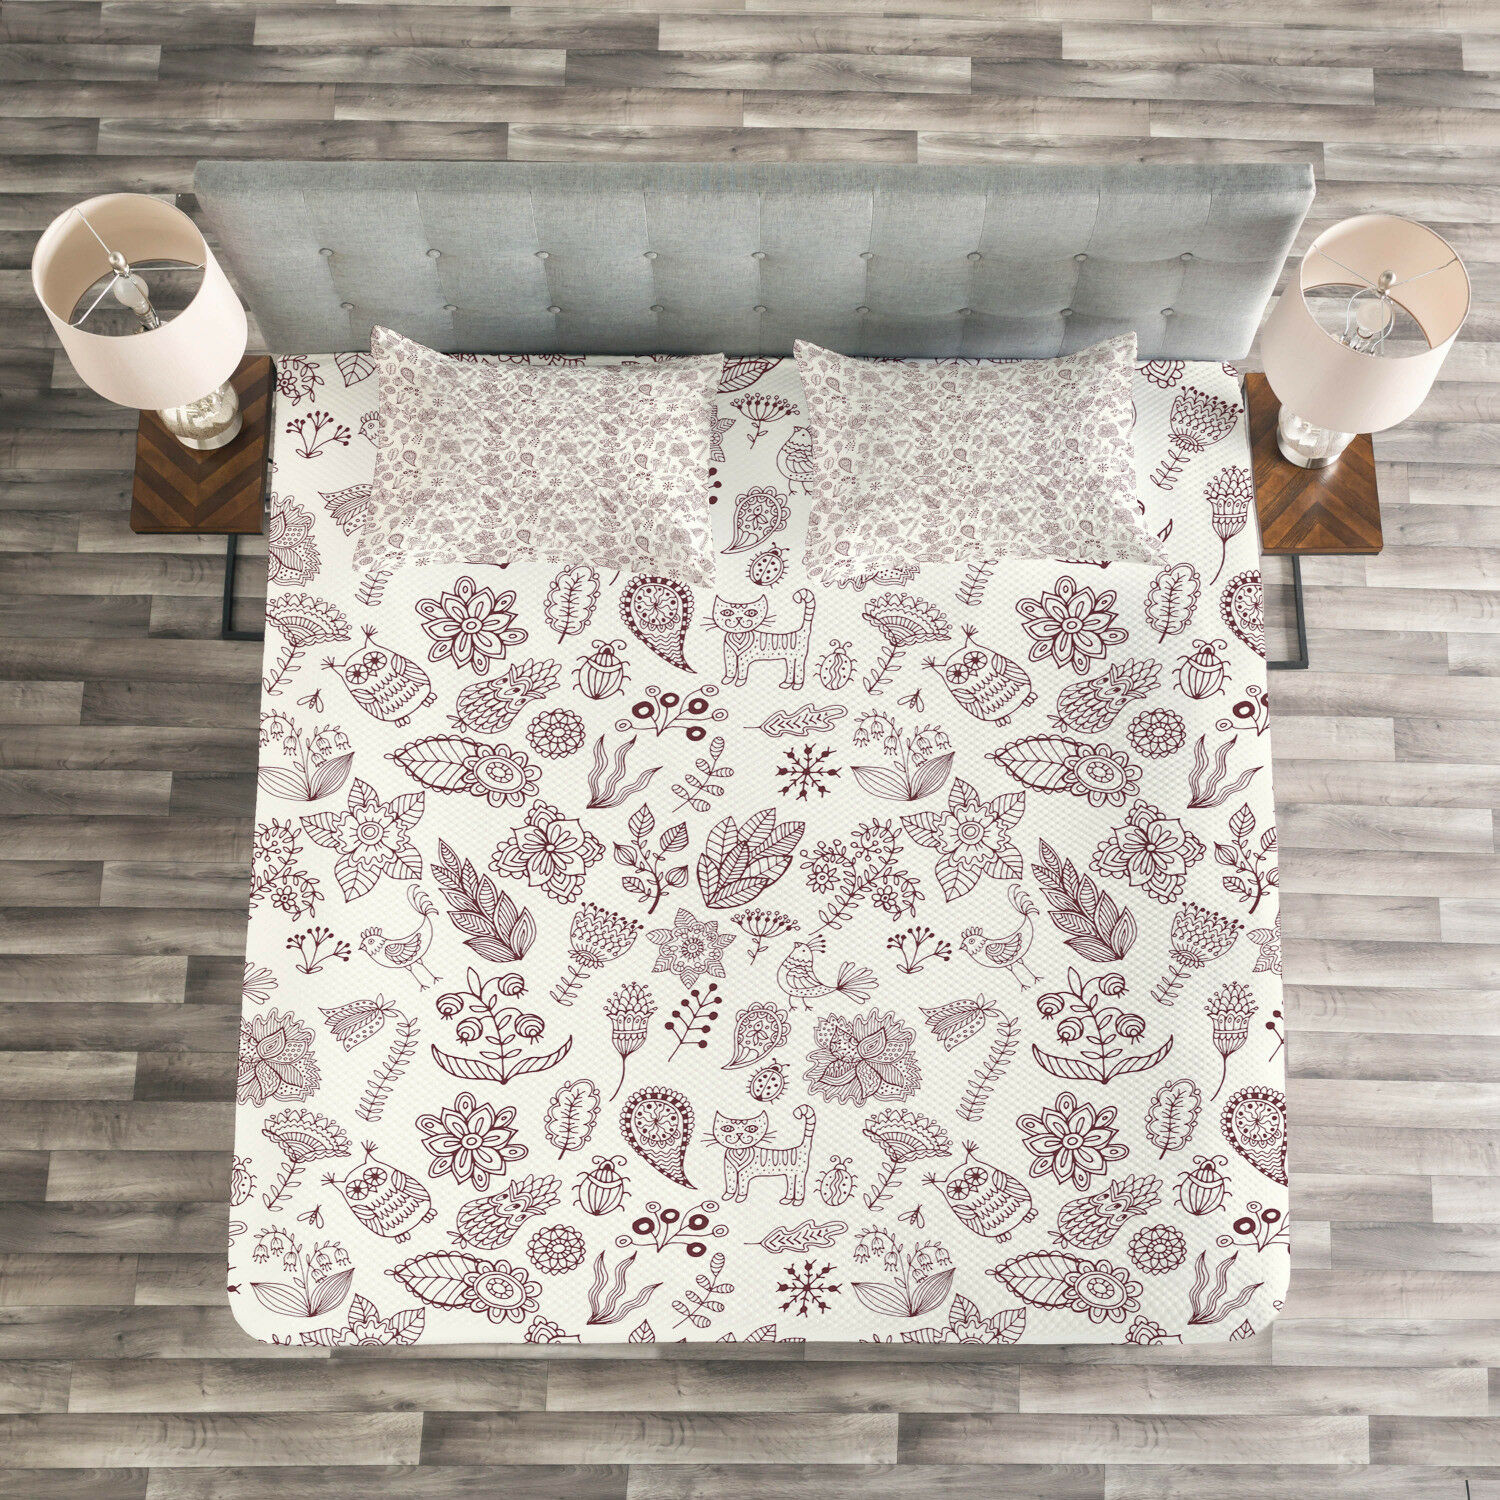 Playroom Quilted Bedspread & Pillow Shams Set, Natural Figures Print